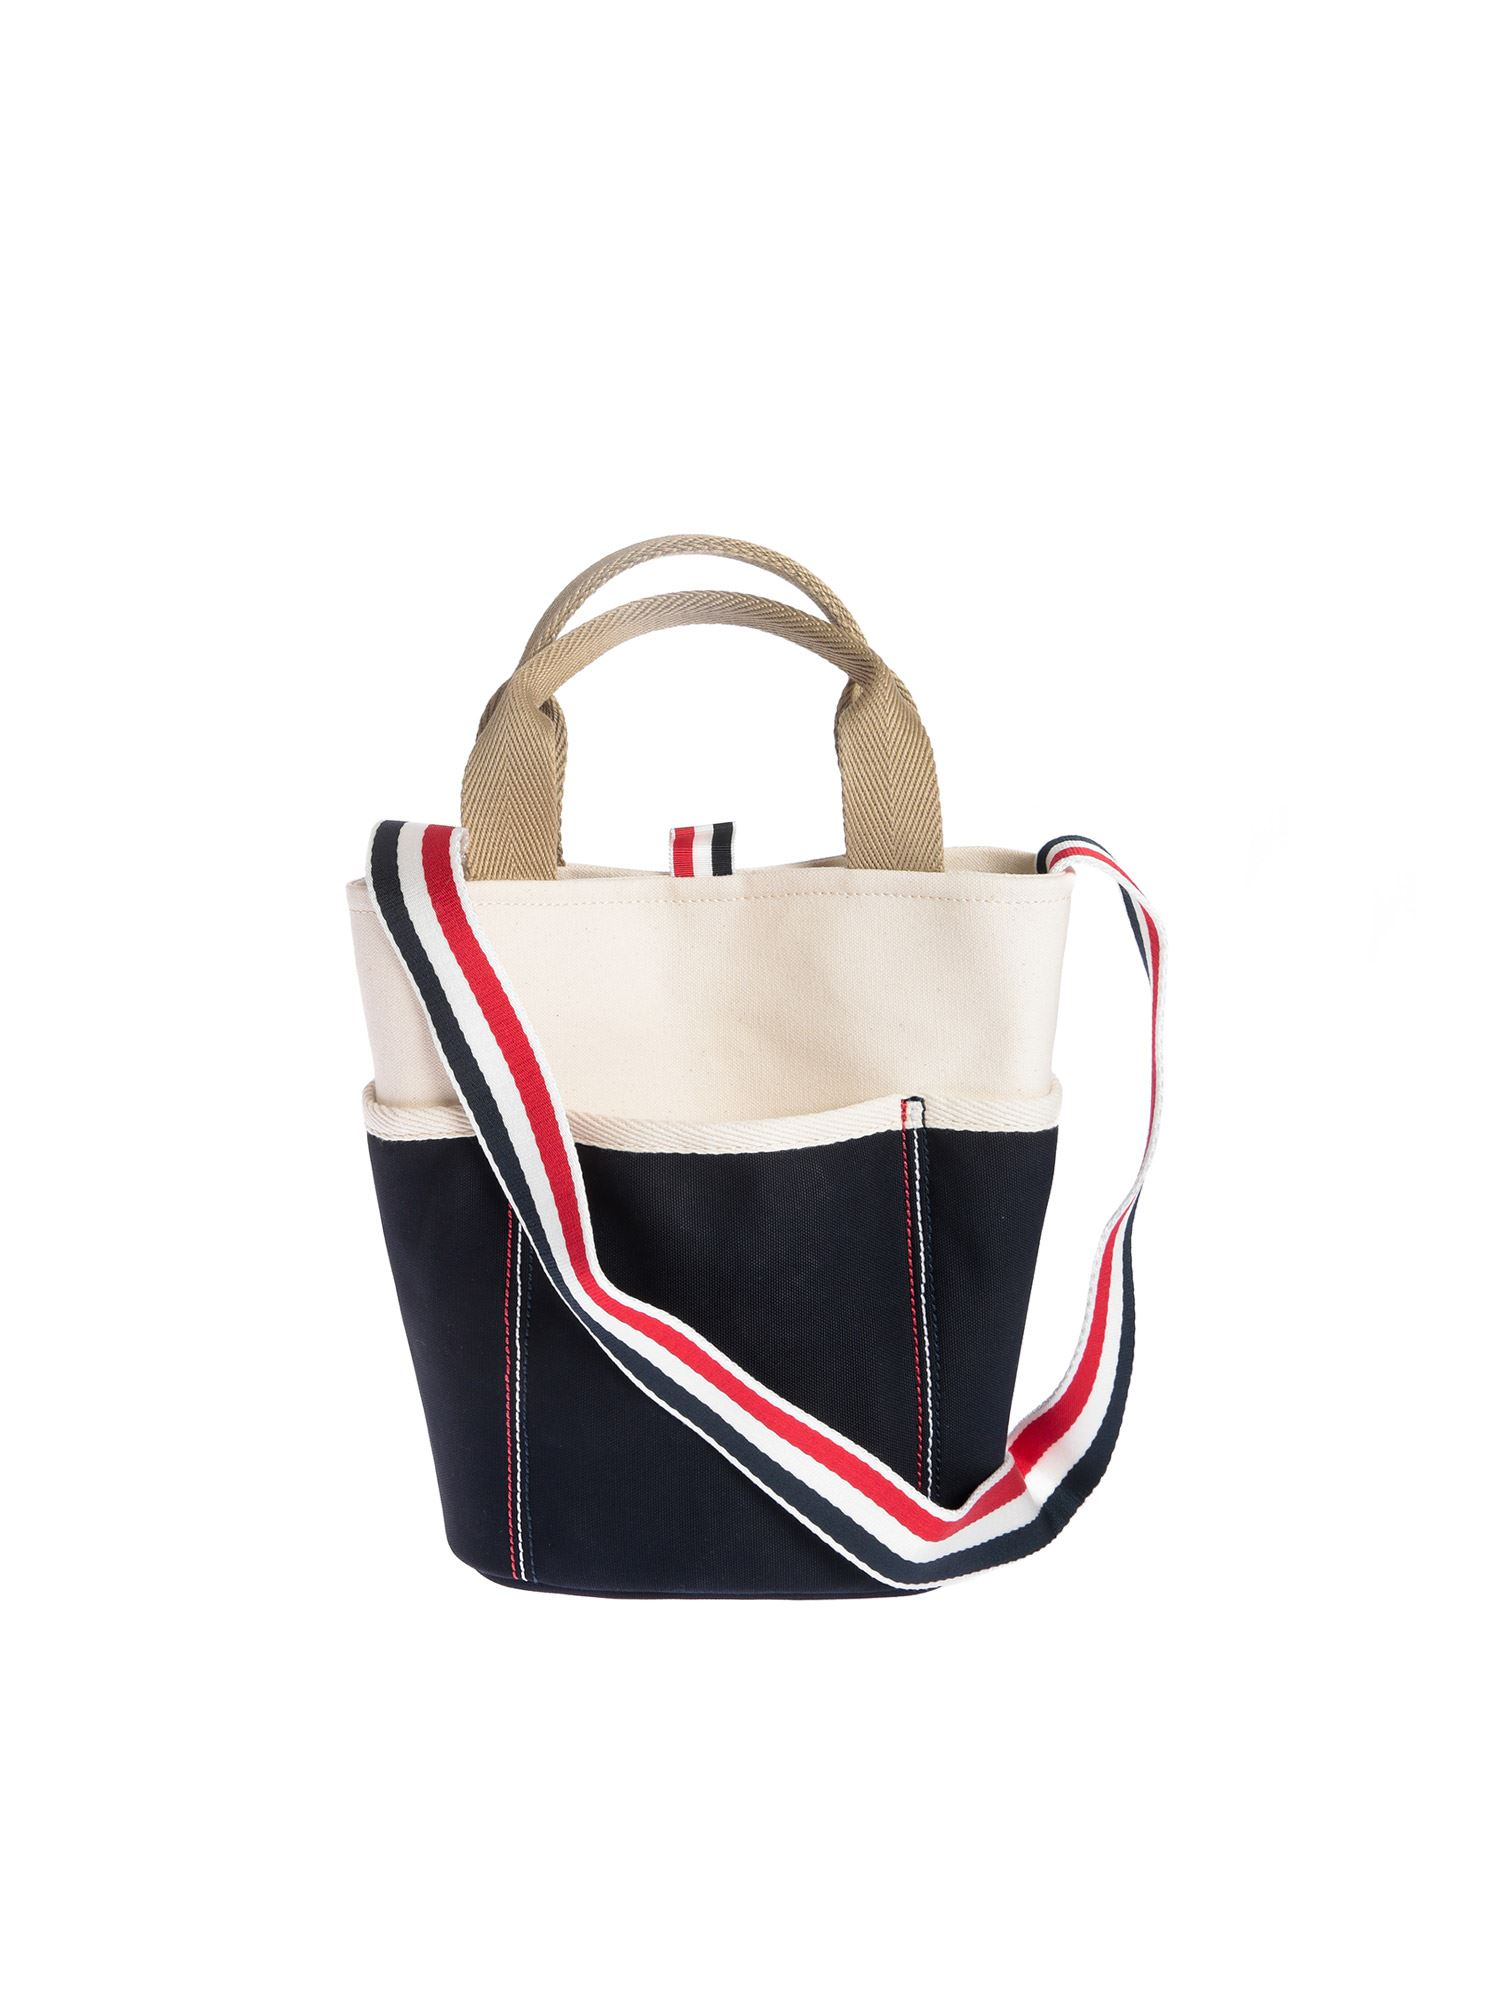 Thom Browne LARGE BUCKET BAG IN WHITE AND BLUE